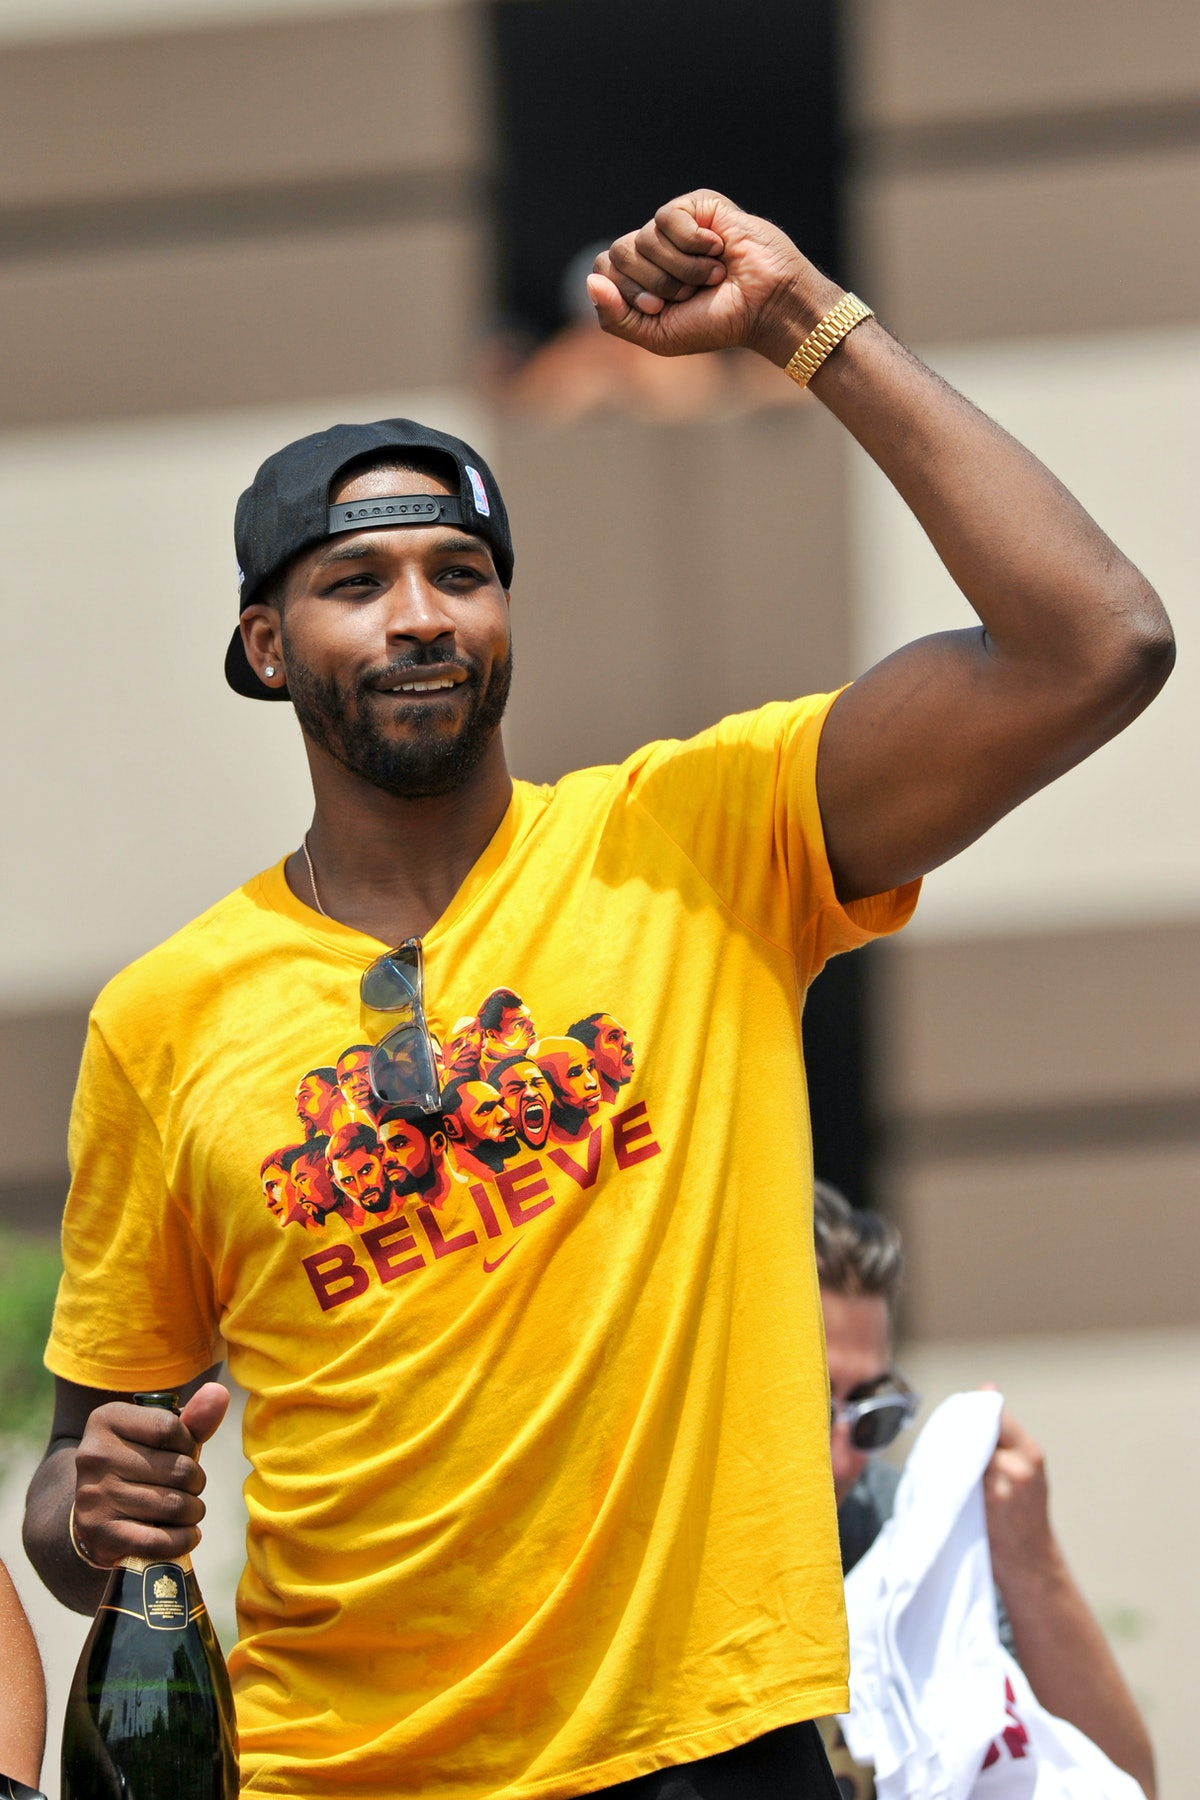 CLEVELAND, OH - JUNE 22, 2016: Tristan Thompson of the Cleveland Cavaliers celebrates during the Cle...